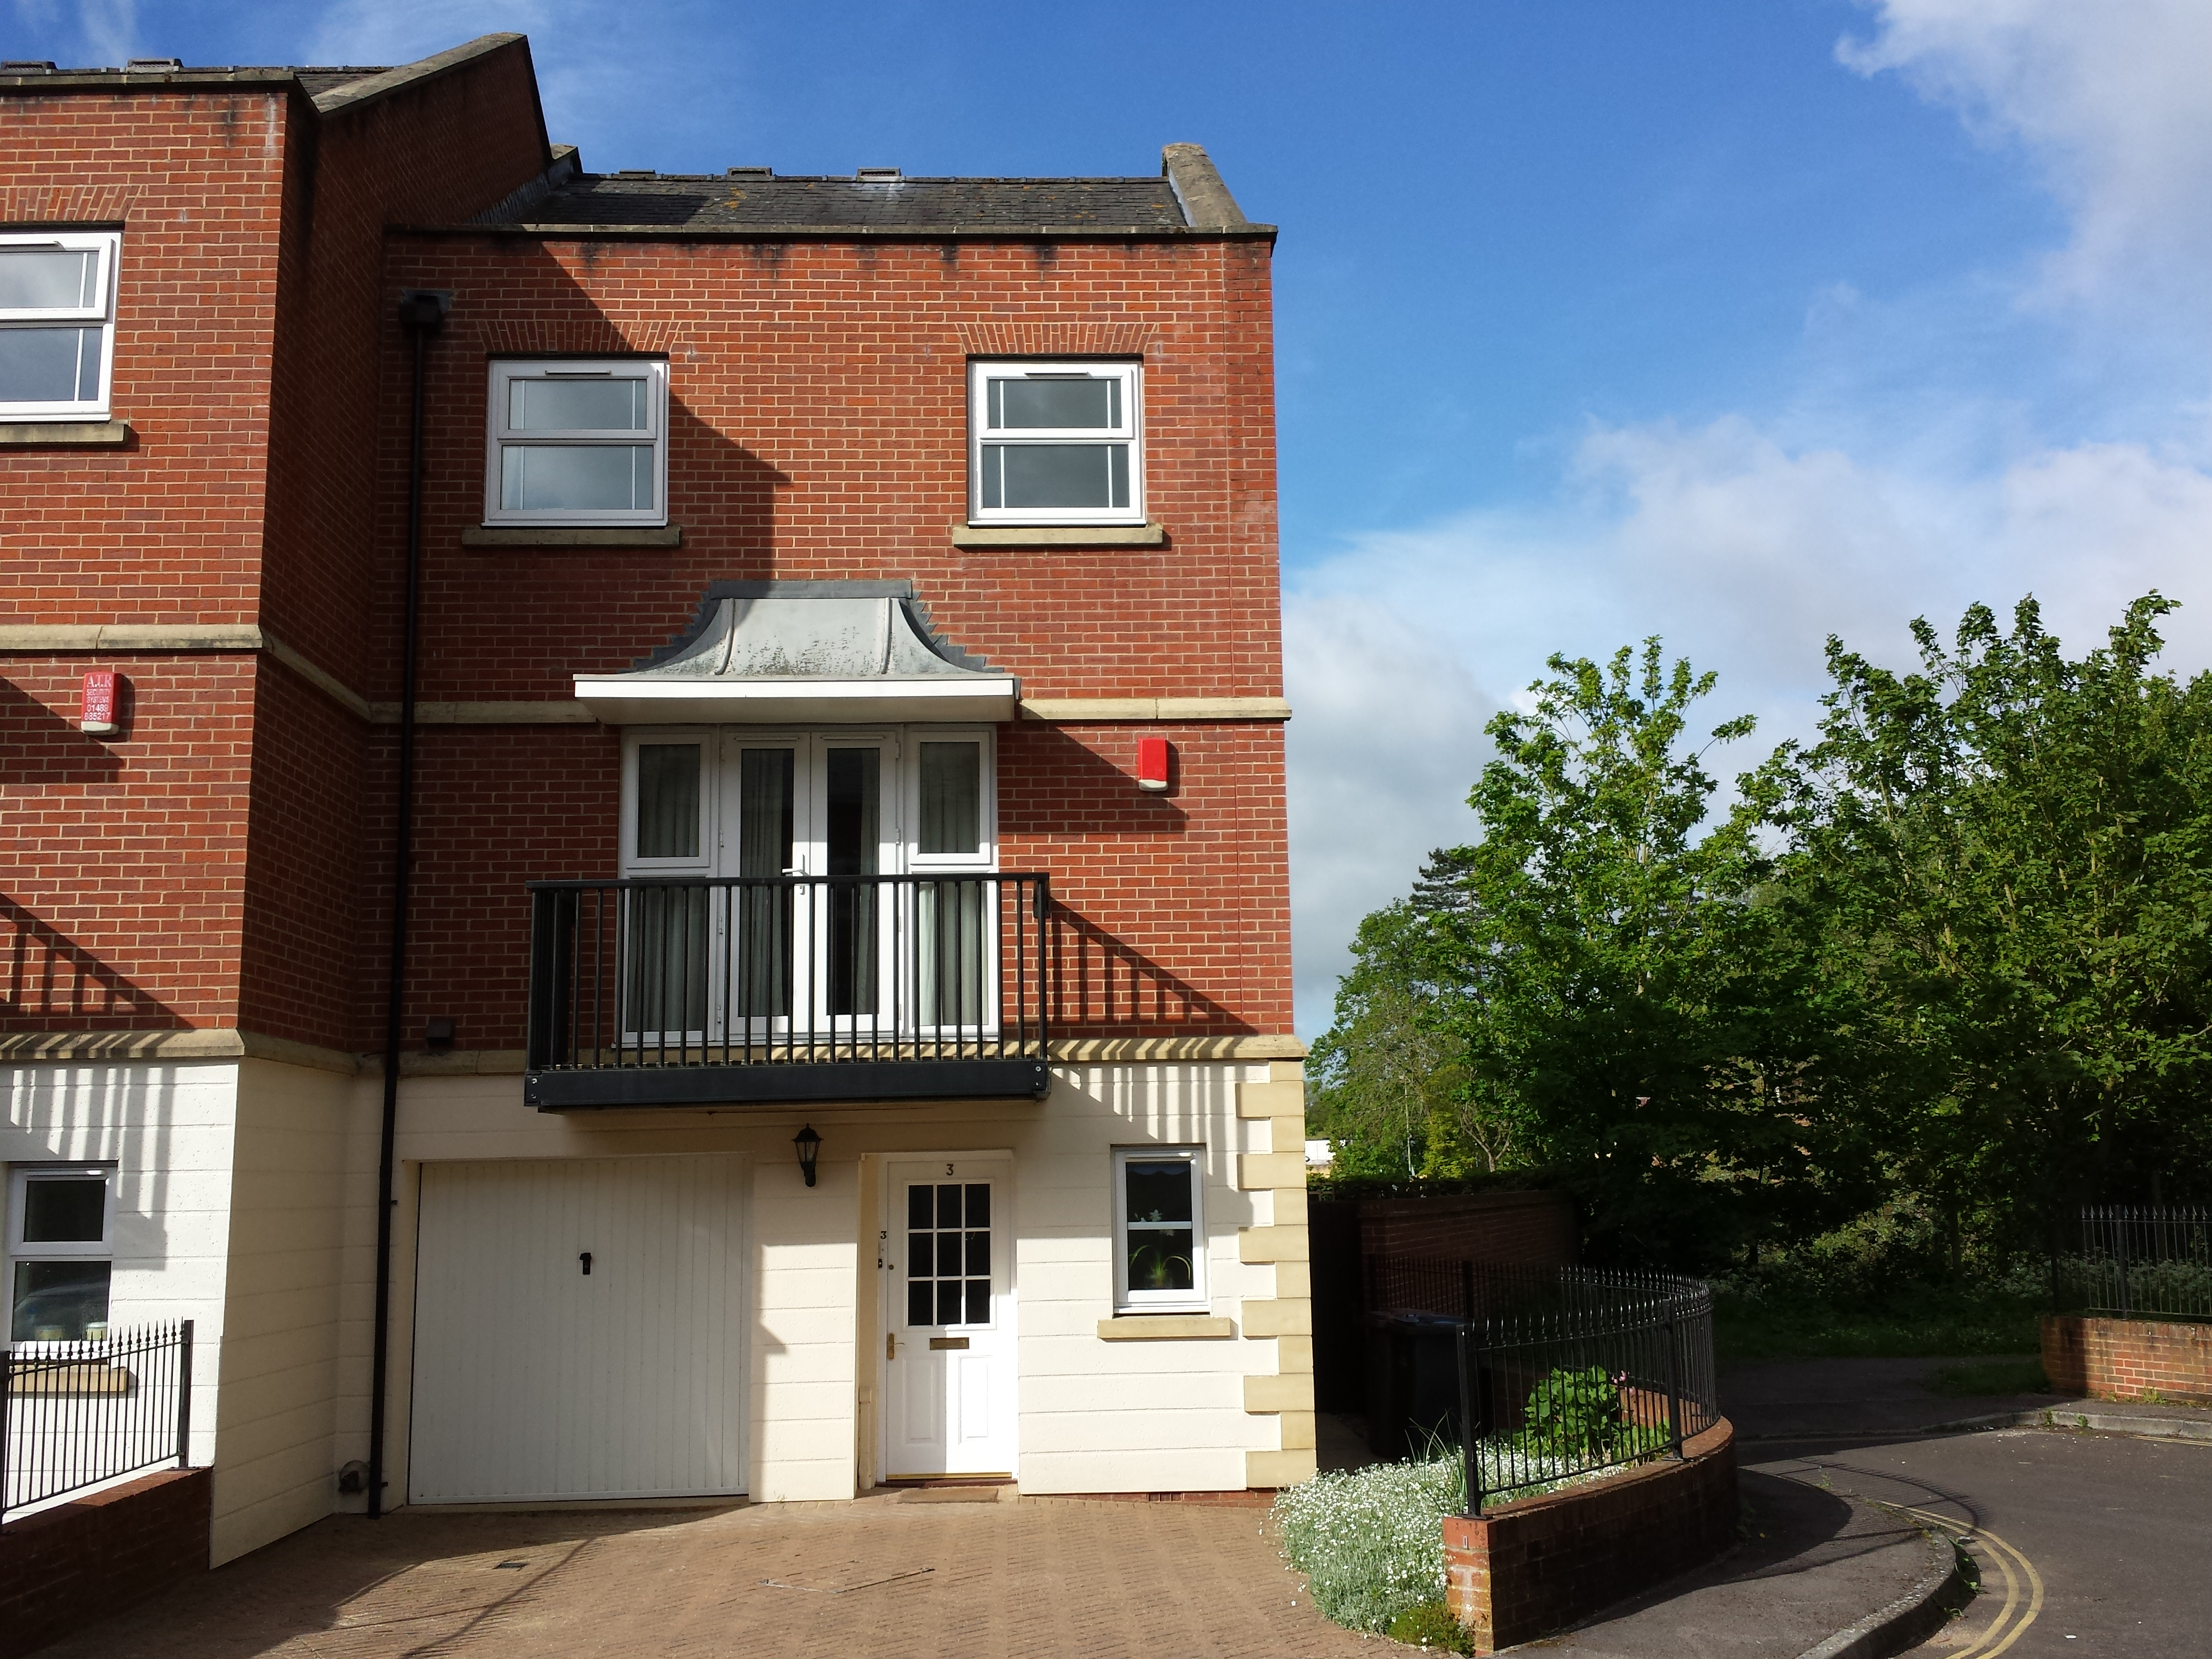 3 COLLEGE MEWS  ANDOVER SP10 1QX